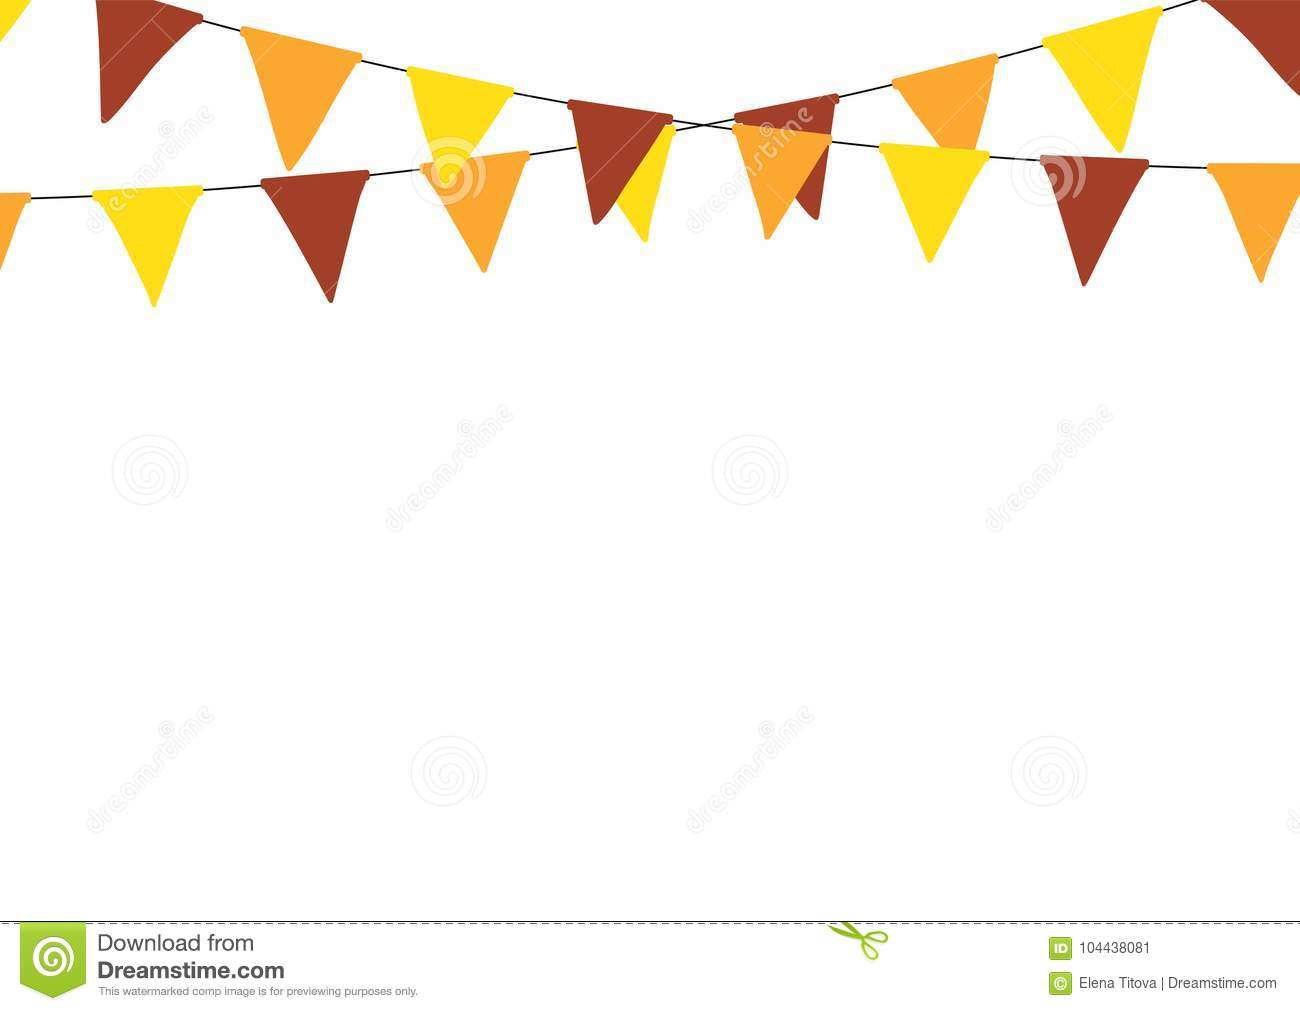 Thanksgiving Bunting Flags Holiday Decorations Vector Illustration